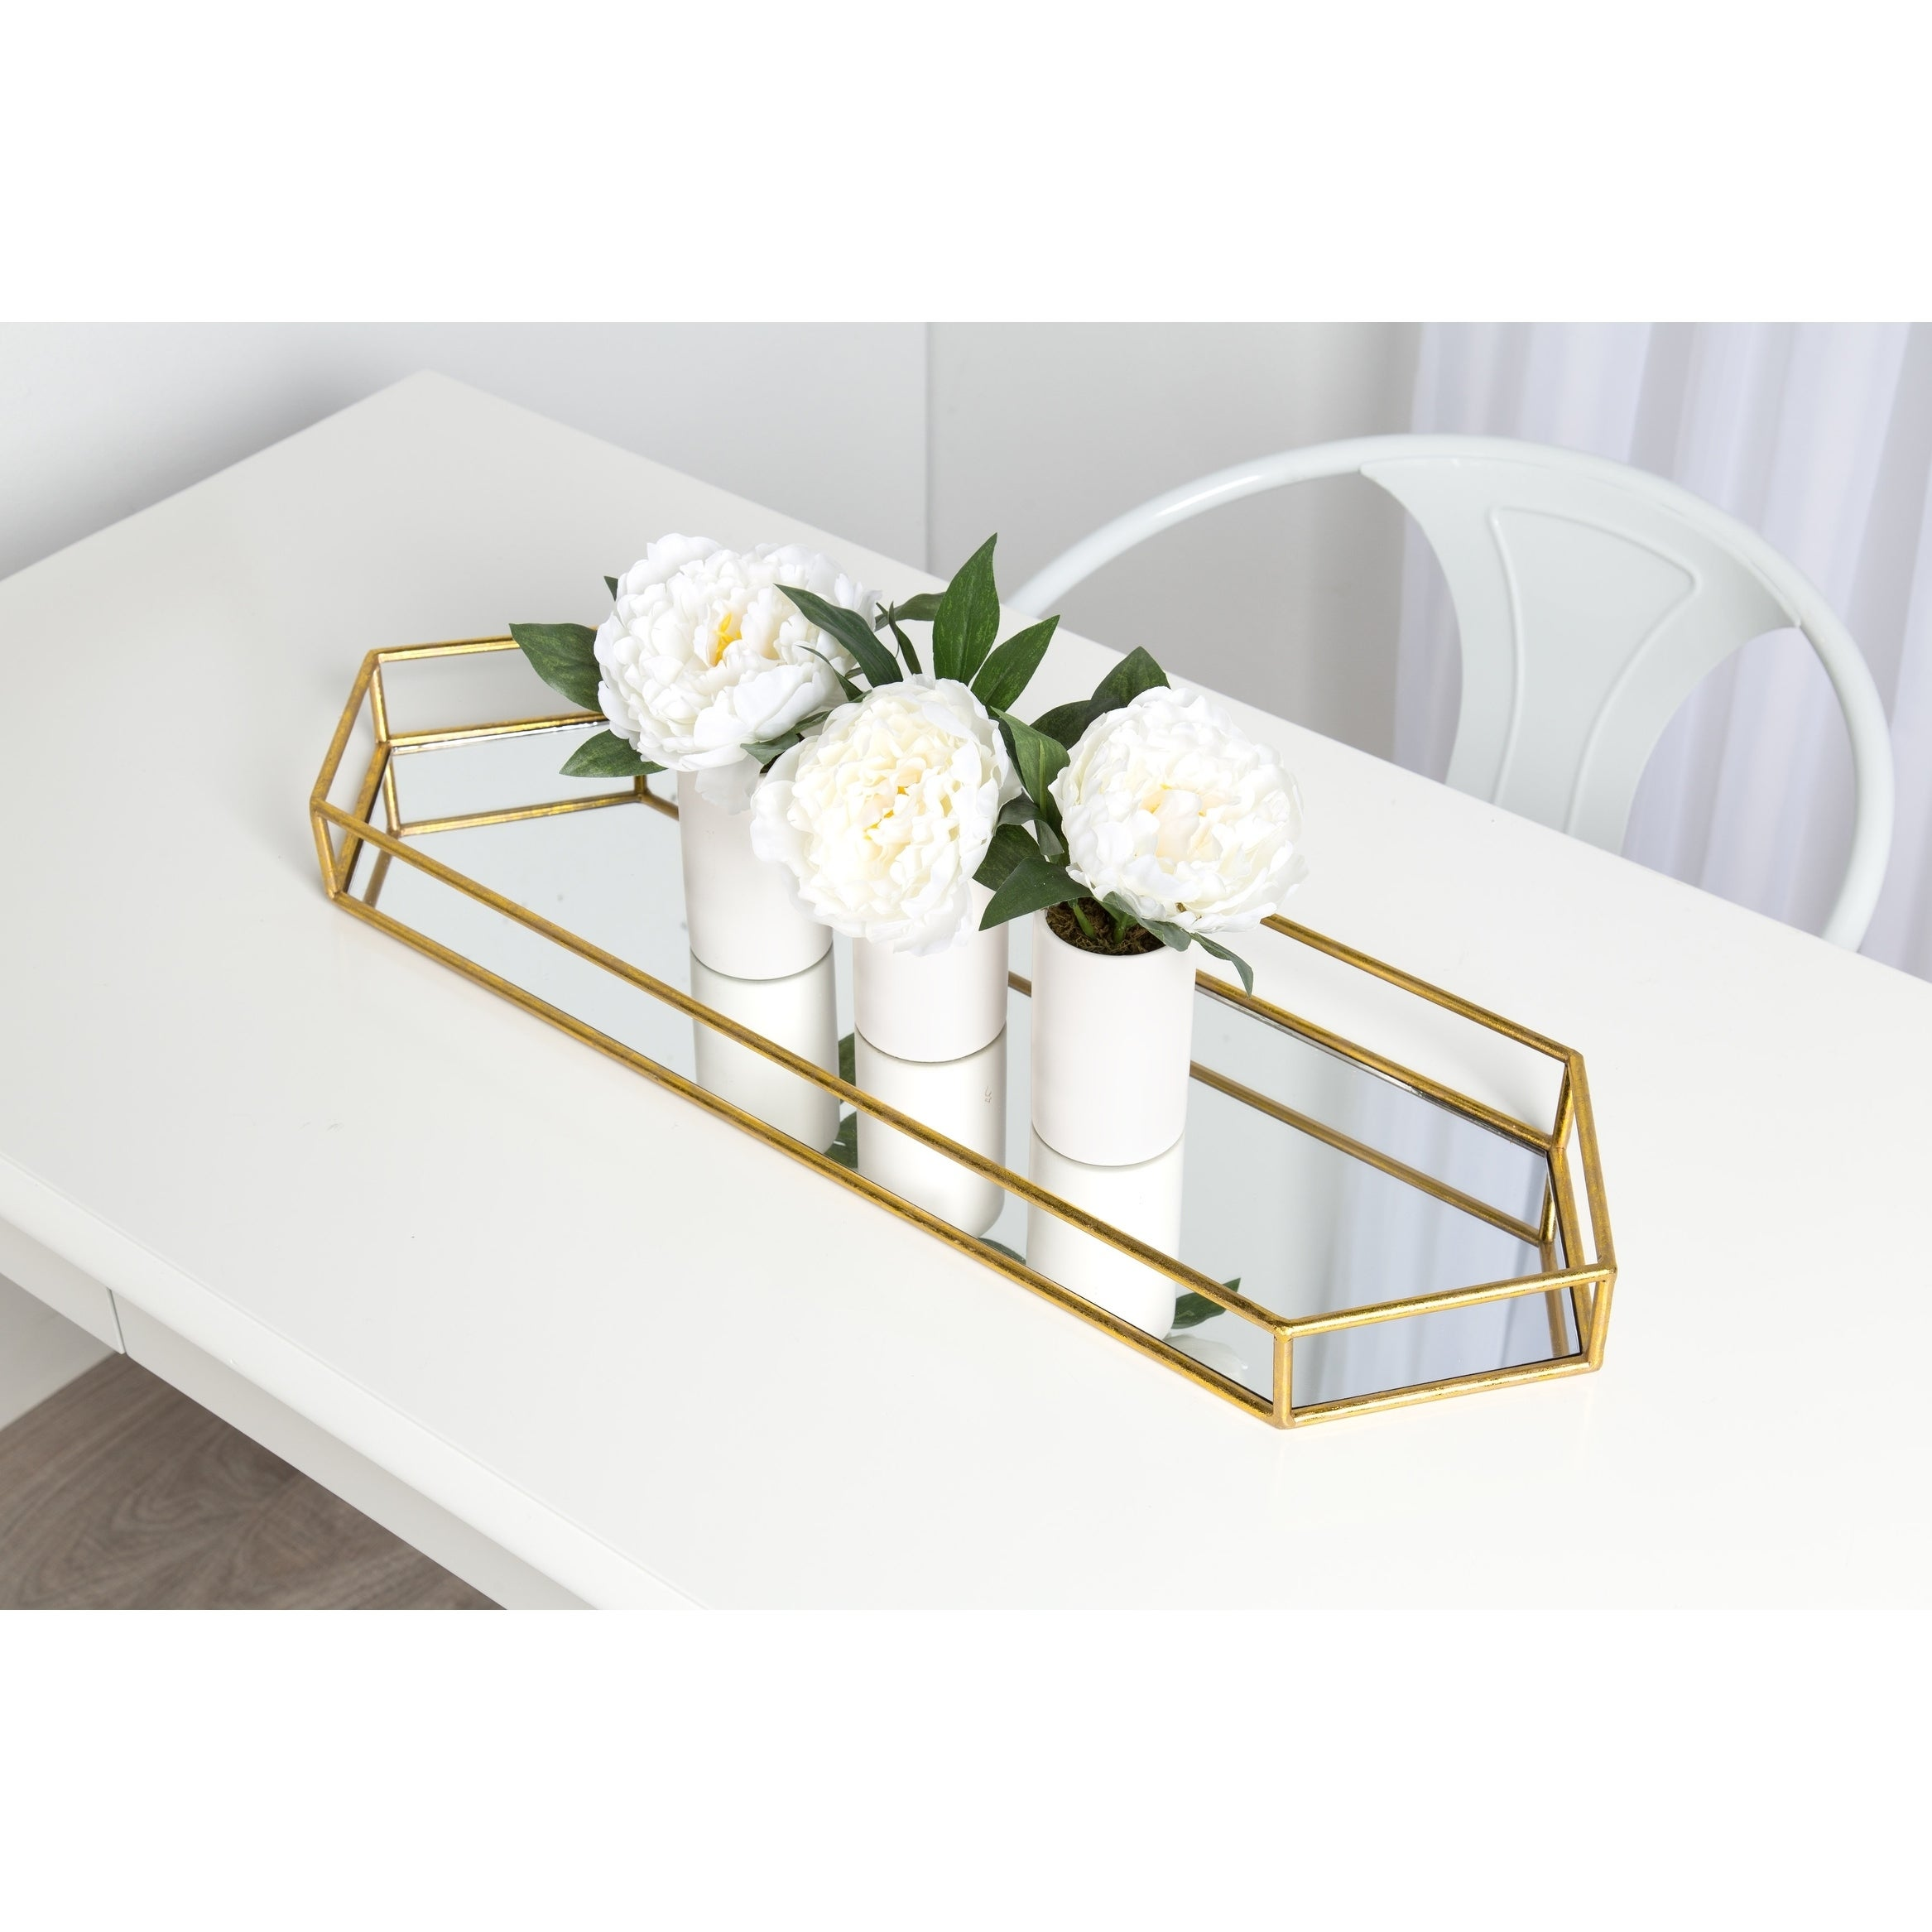 Kate and Laurel Felicia Decorative Mirrored Tray Free Shipping